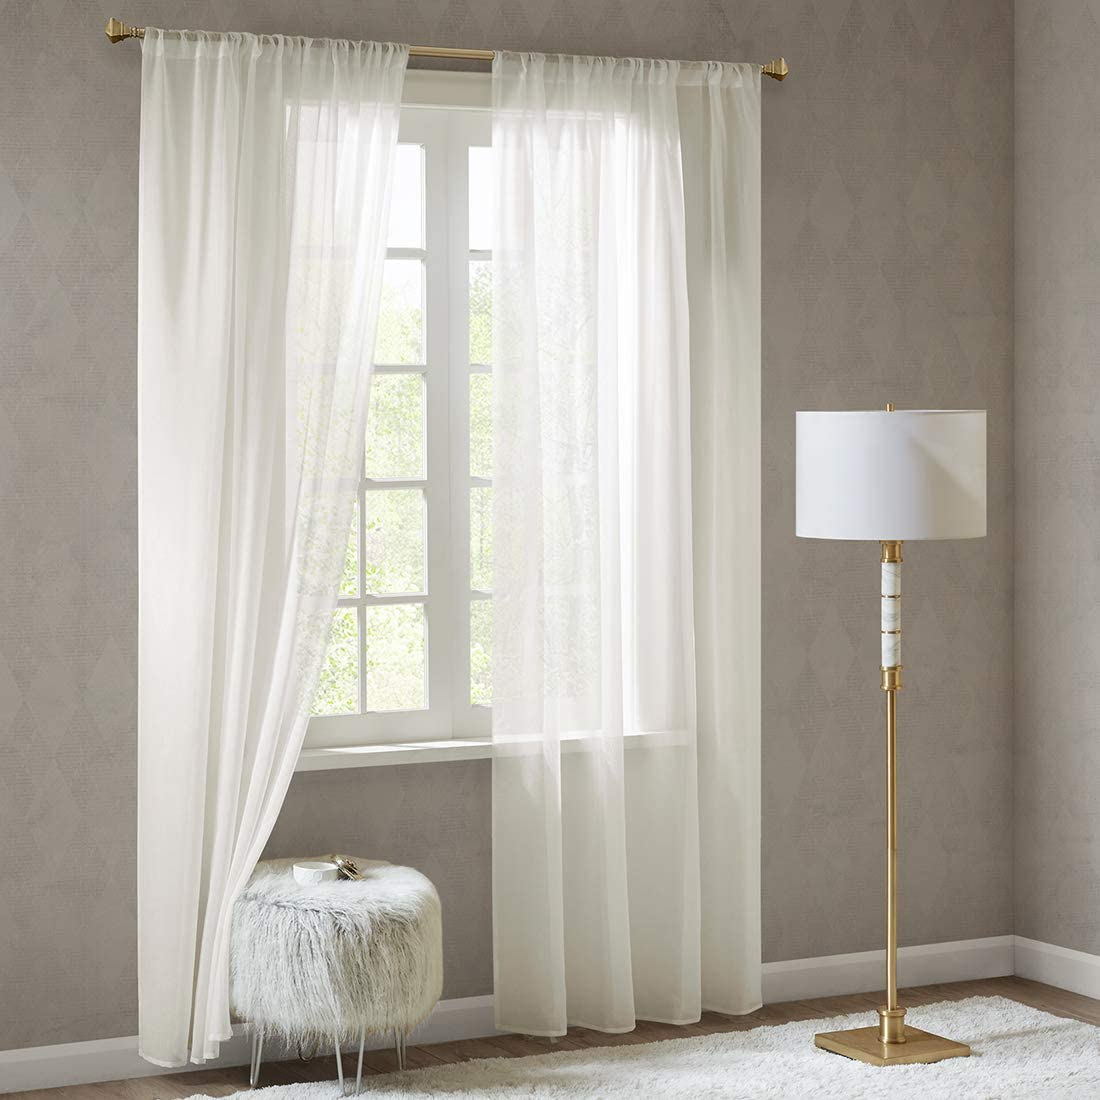 Scm Doris Sheer Voile Curtains Transparent Window Sheer Curtain Drapes 140x245cm Cream 2 Panels Classical Ultra Sheer Curtains With Rod Pocket Amazon Co Uk Kitchen Home